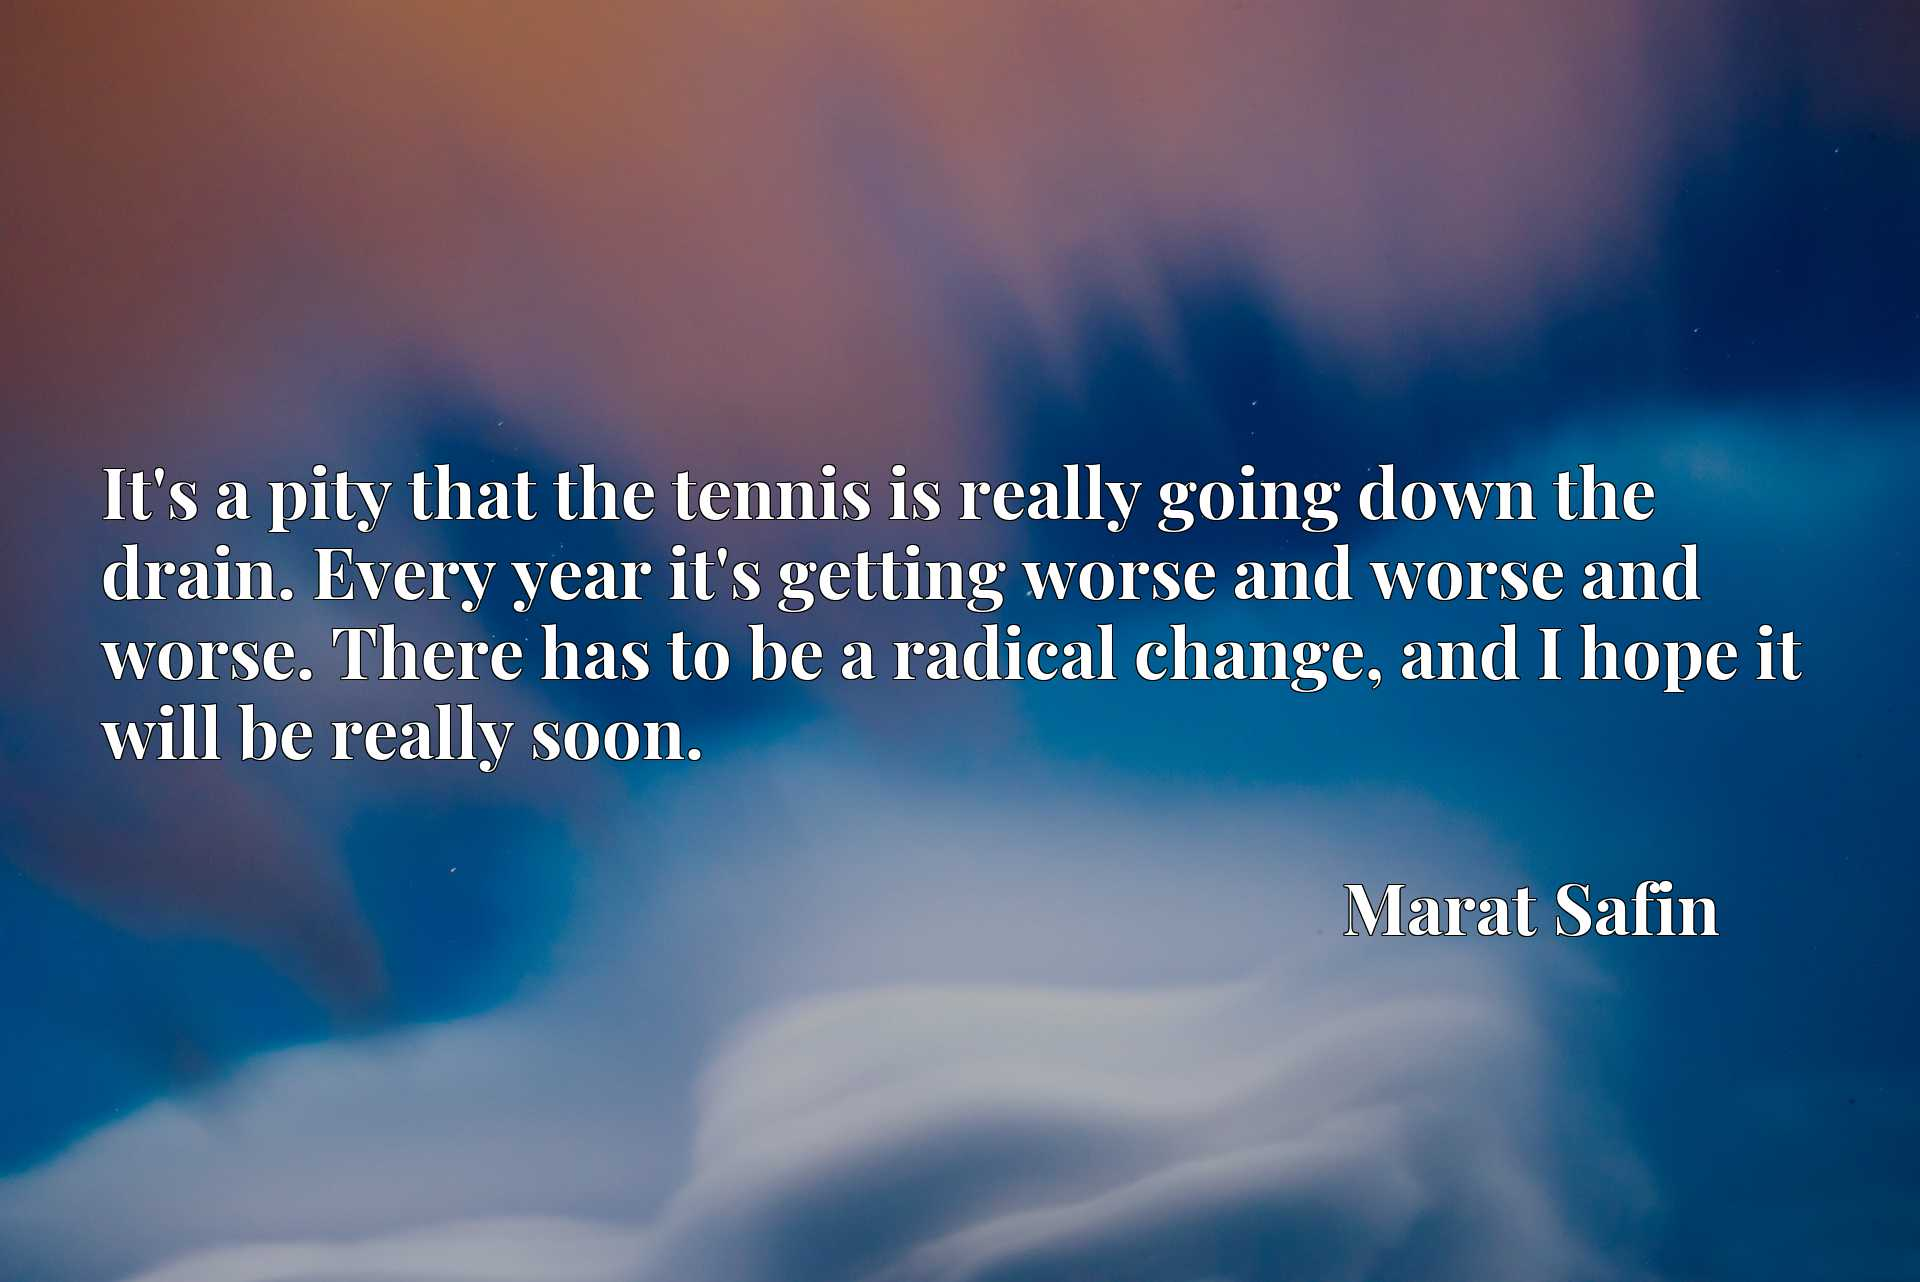 It's a pity that the tennis is really going down the drain. Every year it's getting worse and worse and worse. There has to be a radical change, and I hope it will be really soon.